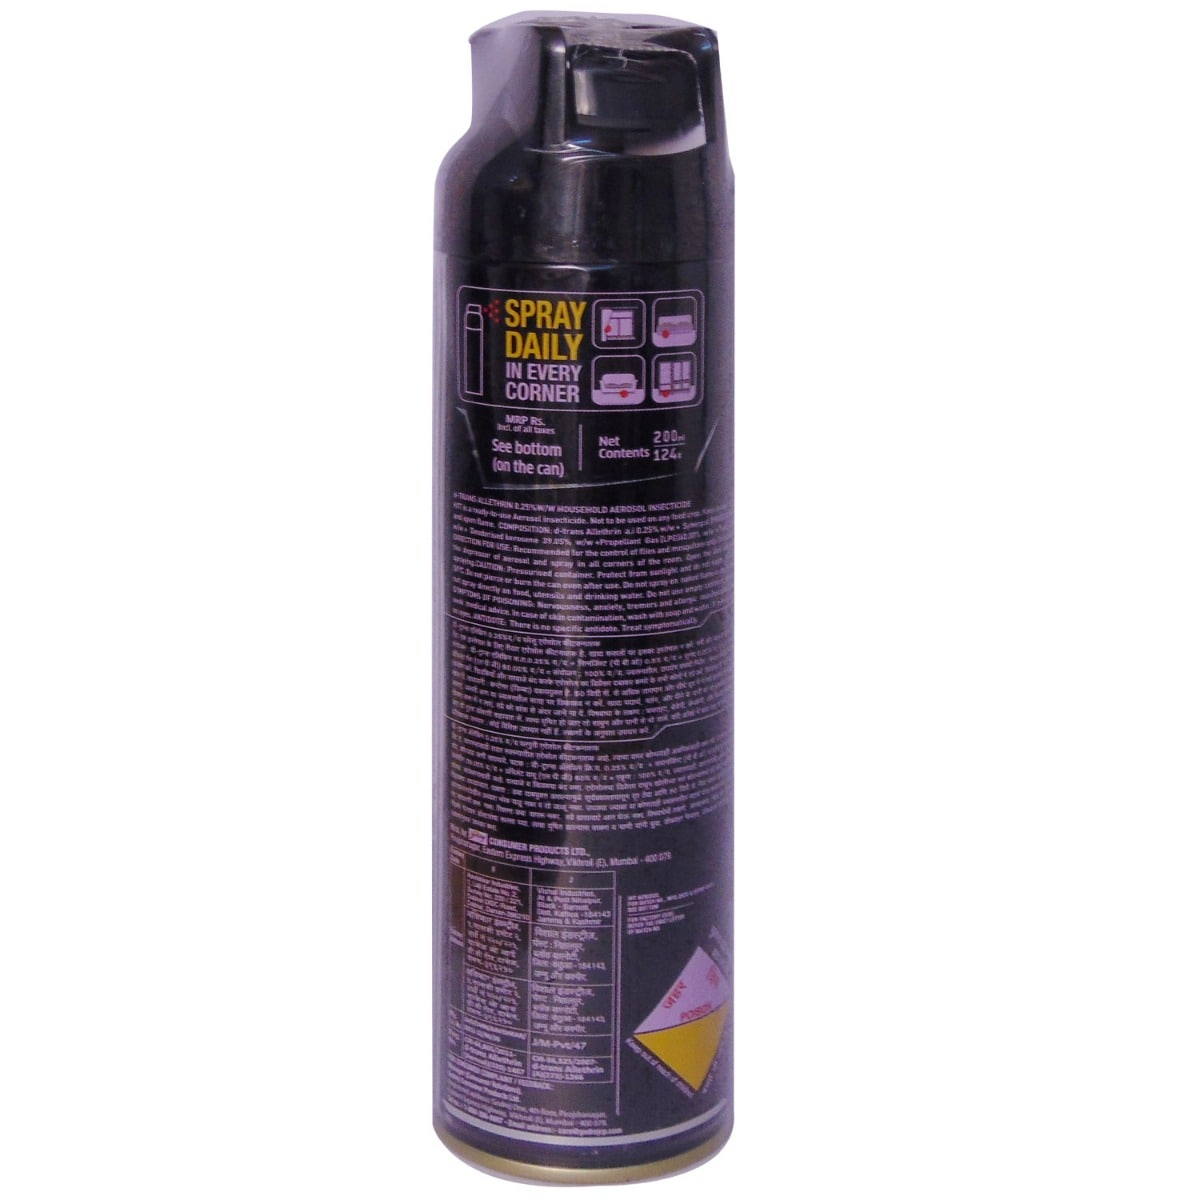 HIT Mosquito and Fly Killer Spray, 200ml, Pack of 1